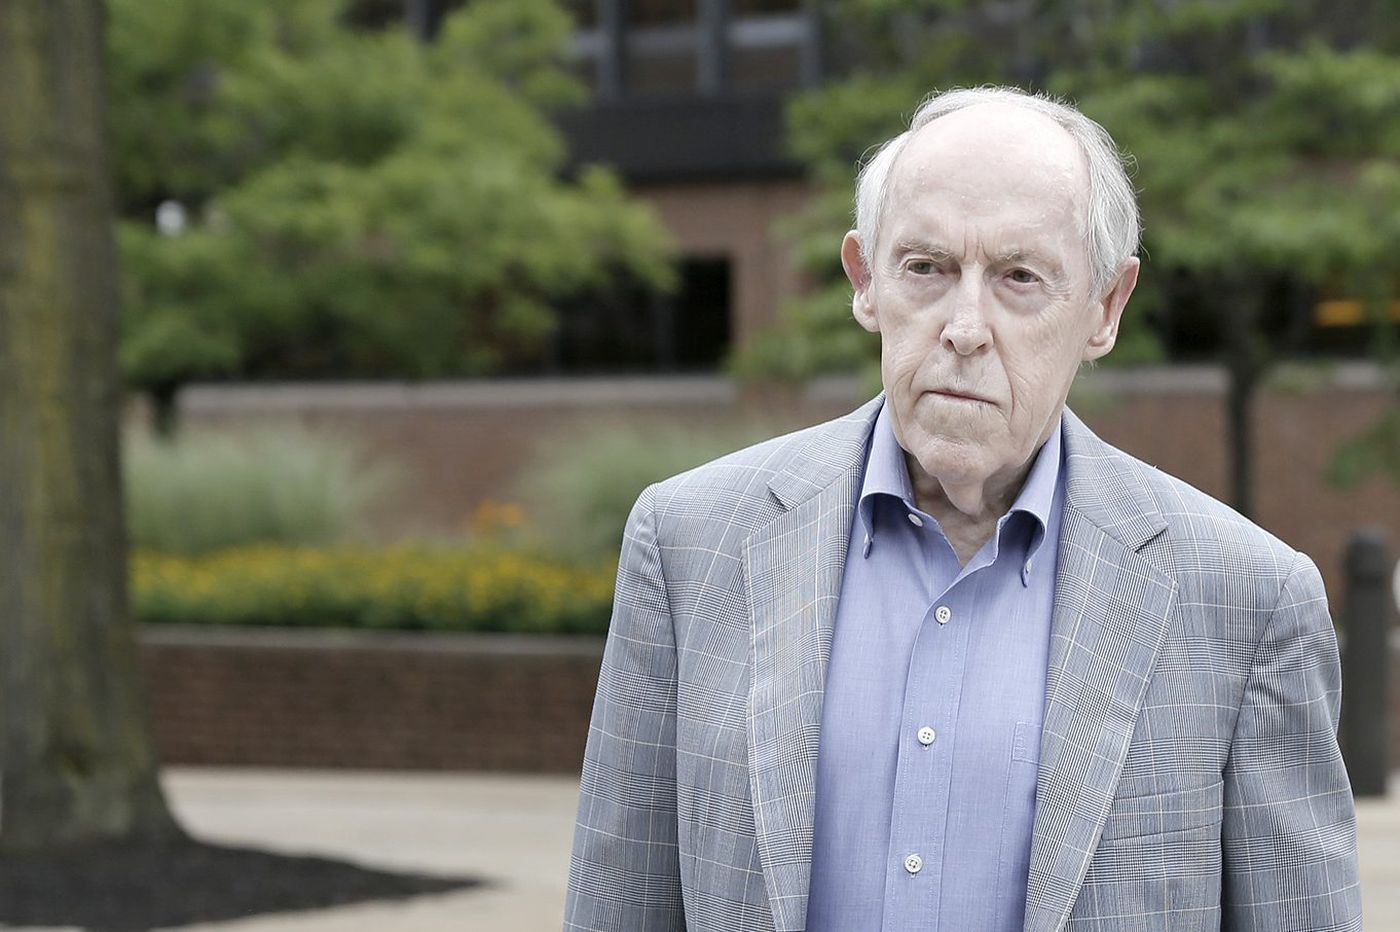 Judge: Main Line's payday lending 'godfather' not too sick for prison